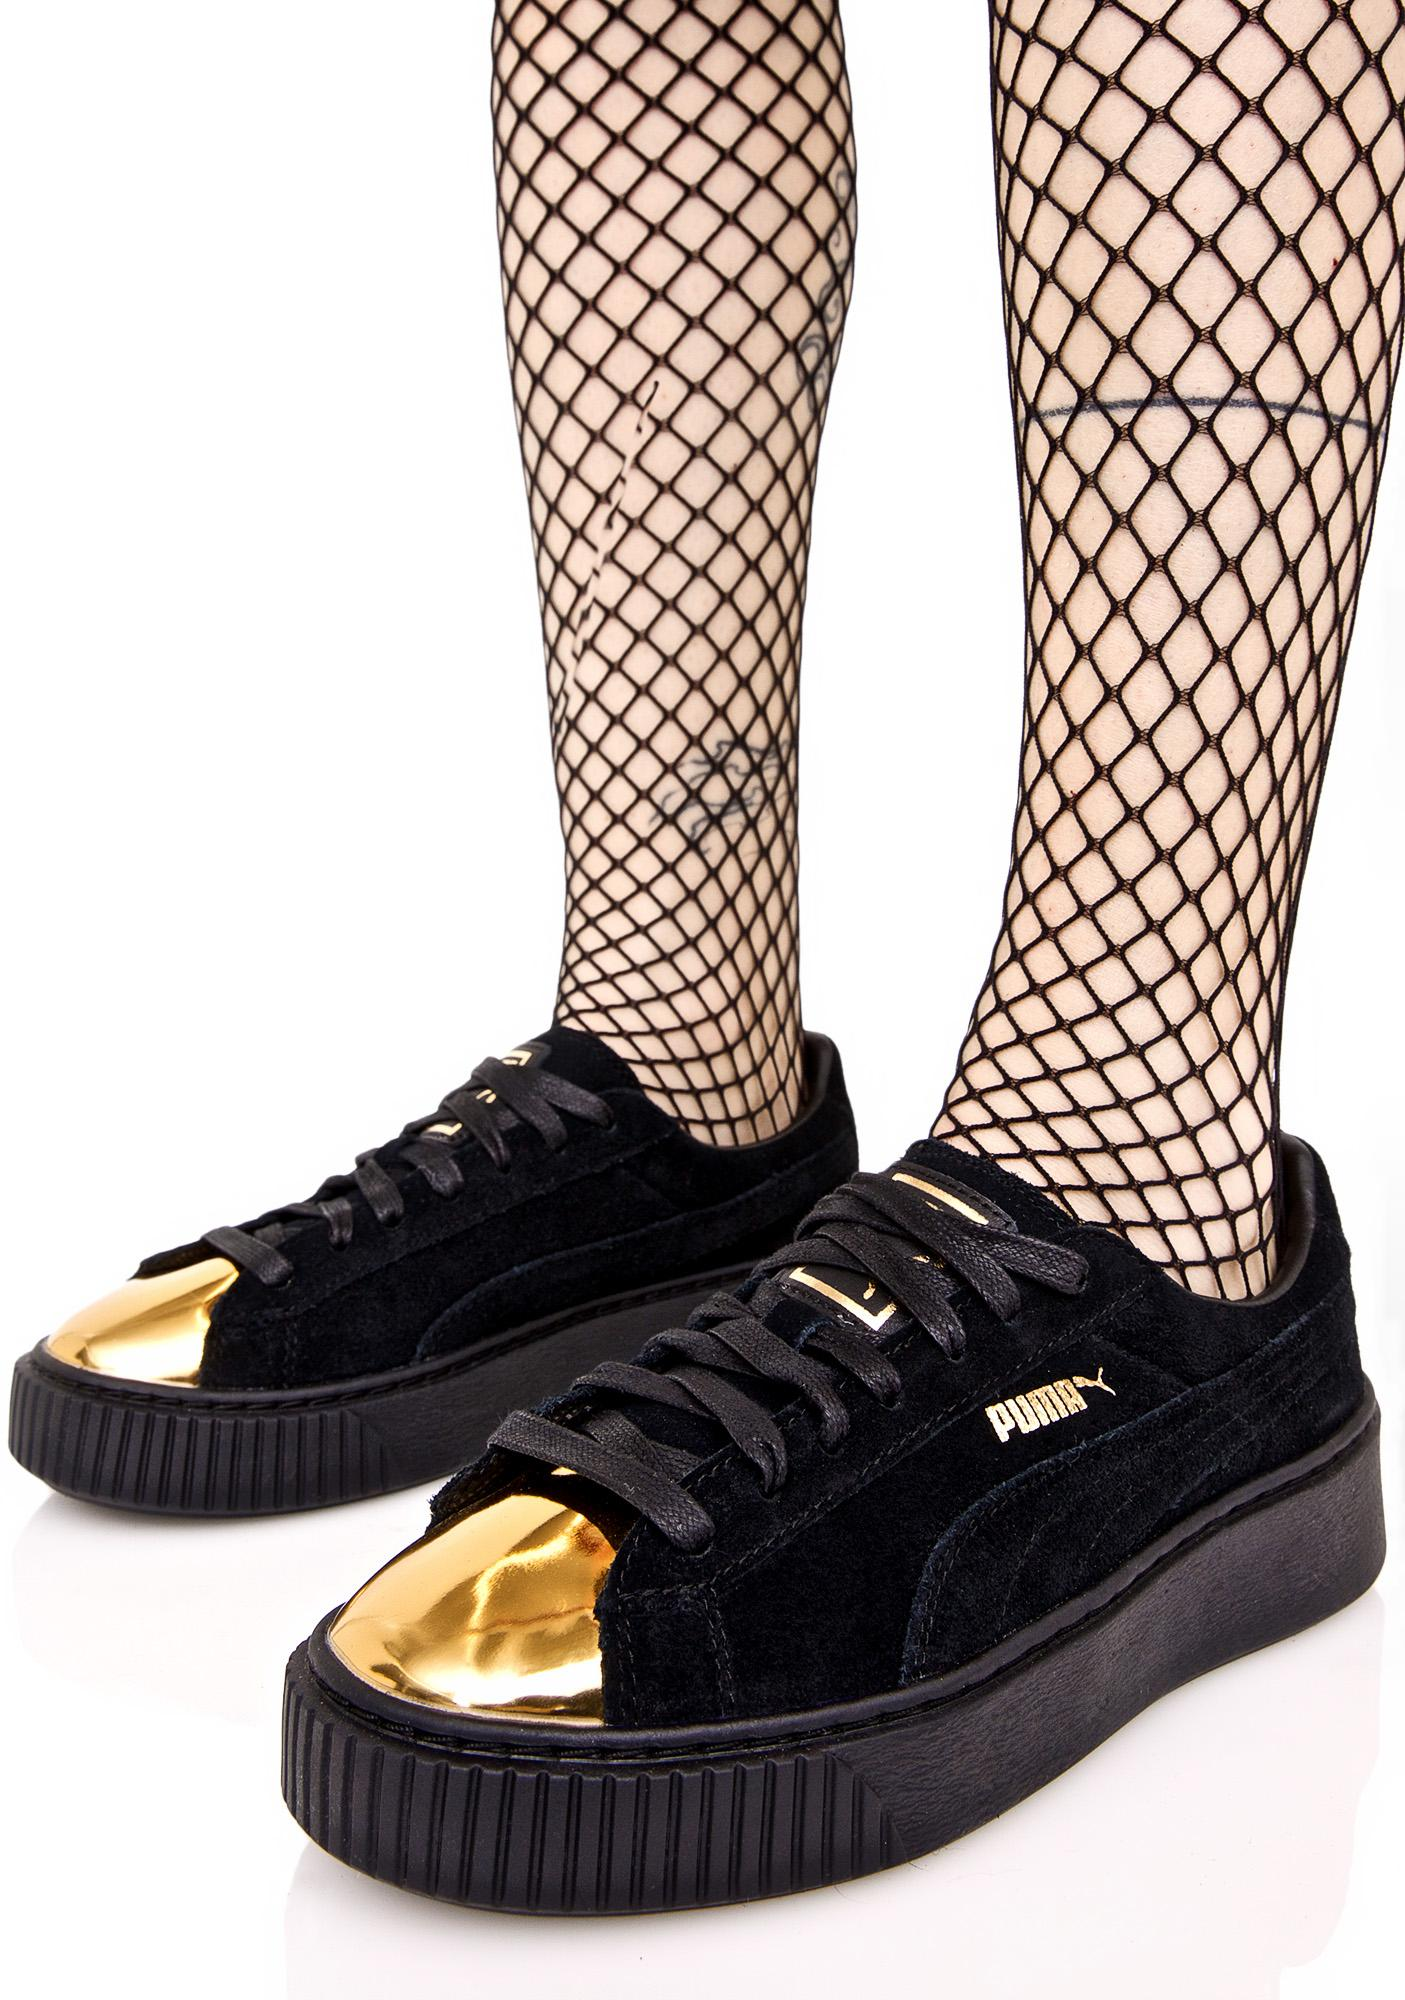 ... PUMA Gold Tip Suede Platform Sneakers ... 8be813594